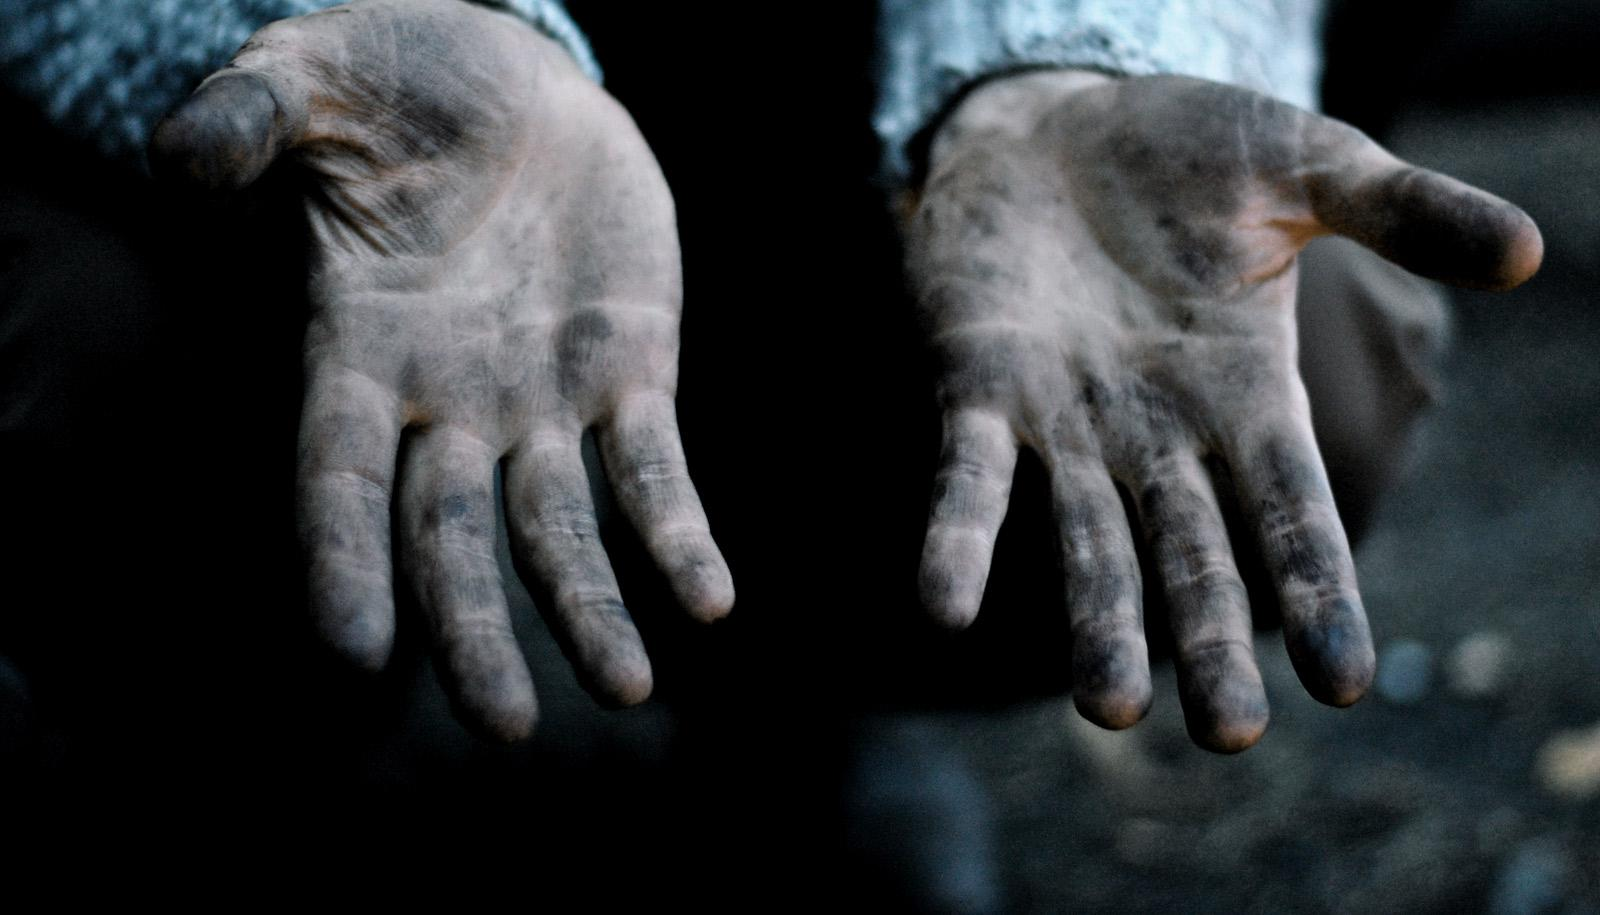 outstretched, muddy hands